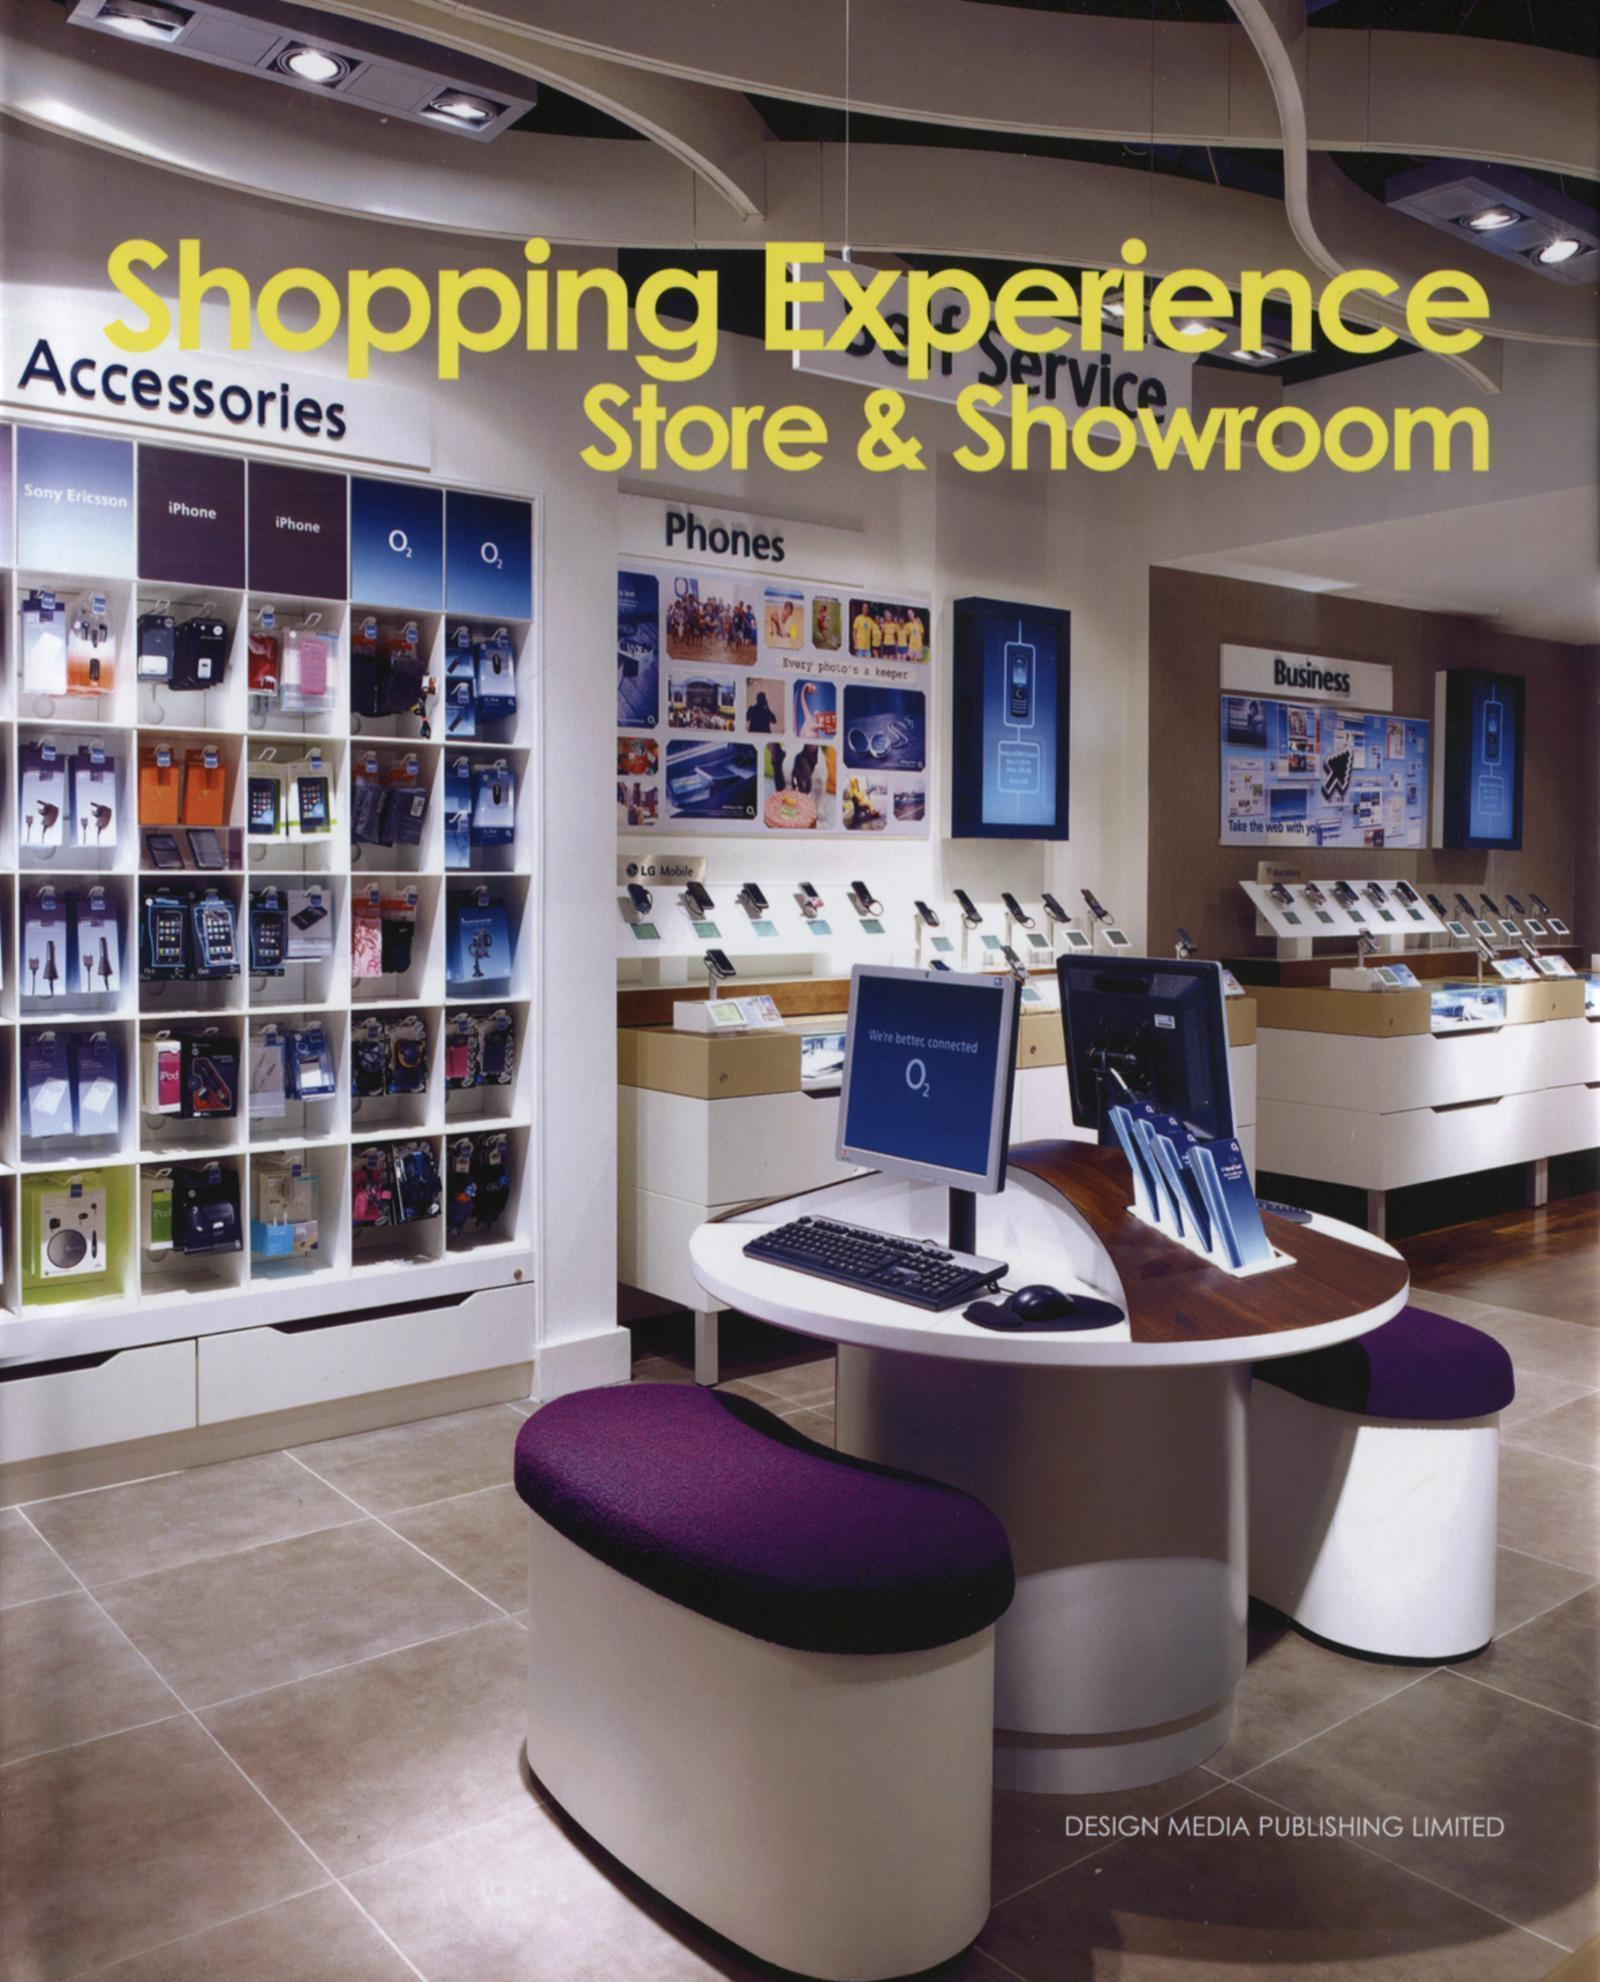 SHOPPING EXPERIENCE. STORE AND SHOWROOM - STORE & SHOWROOM.